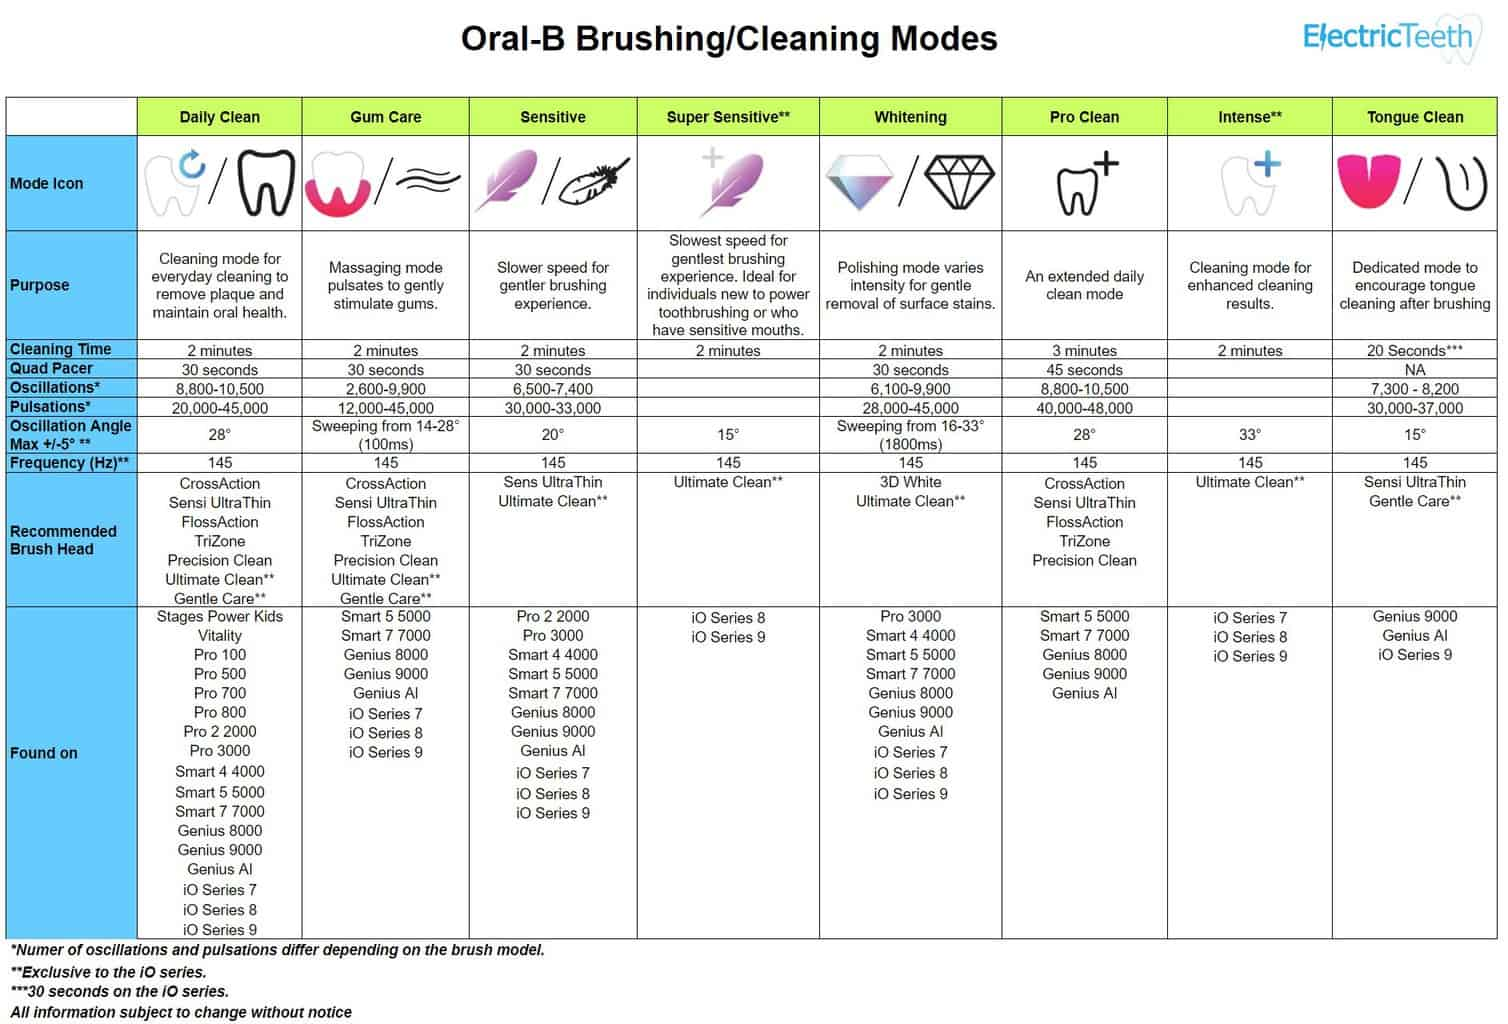 Oral-B cleaning modes explained 4